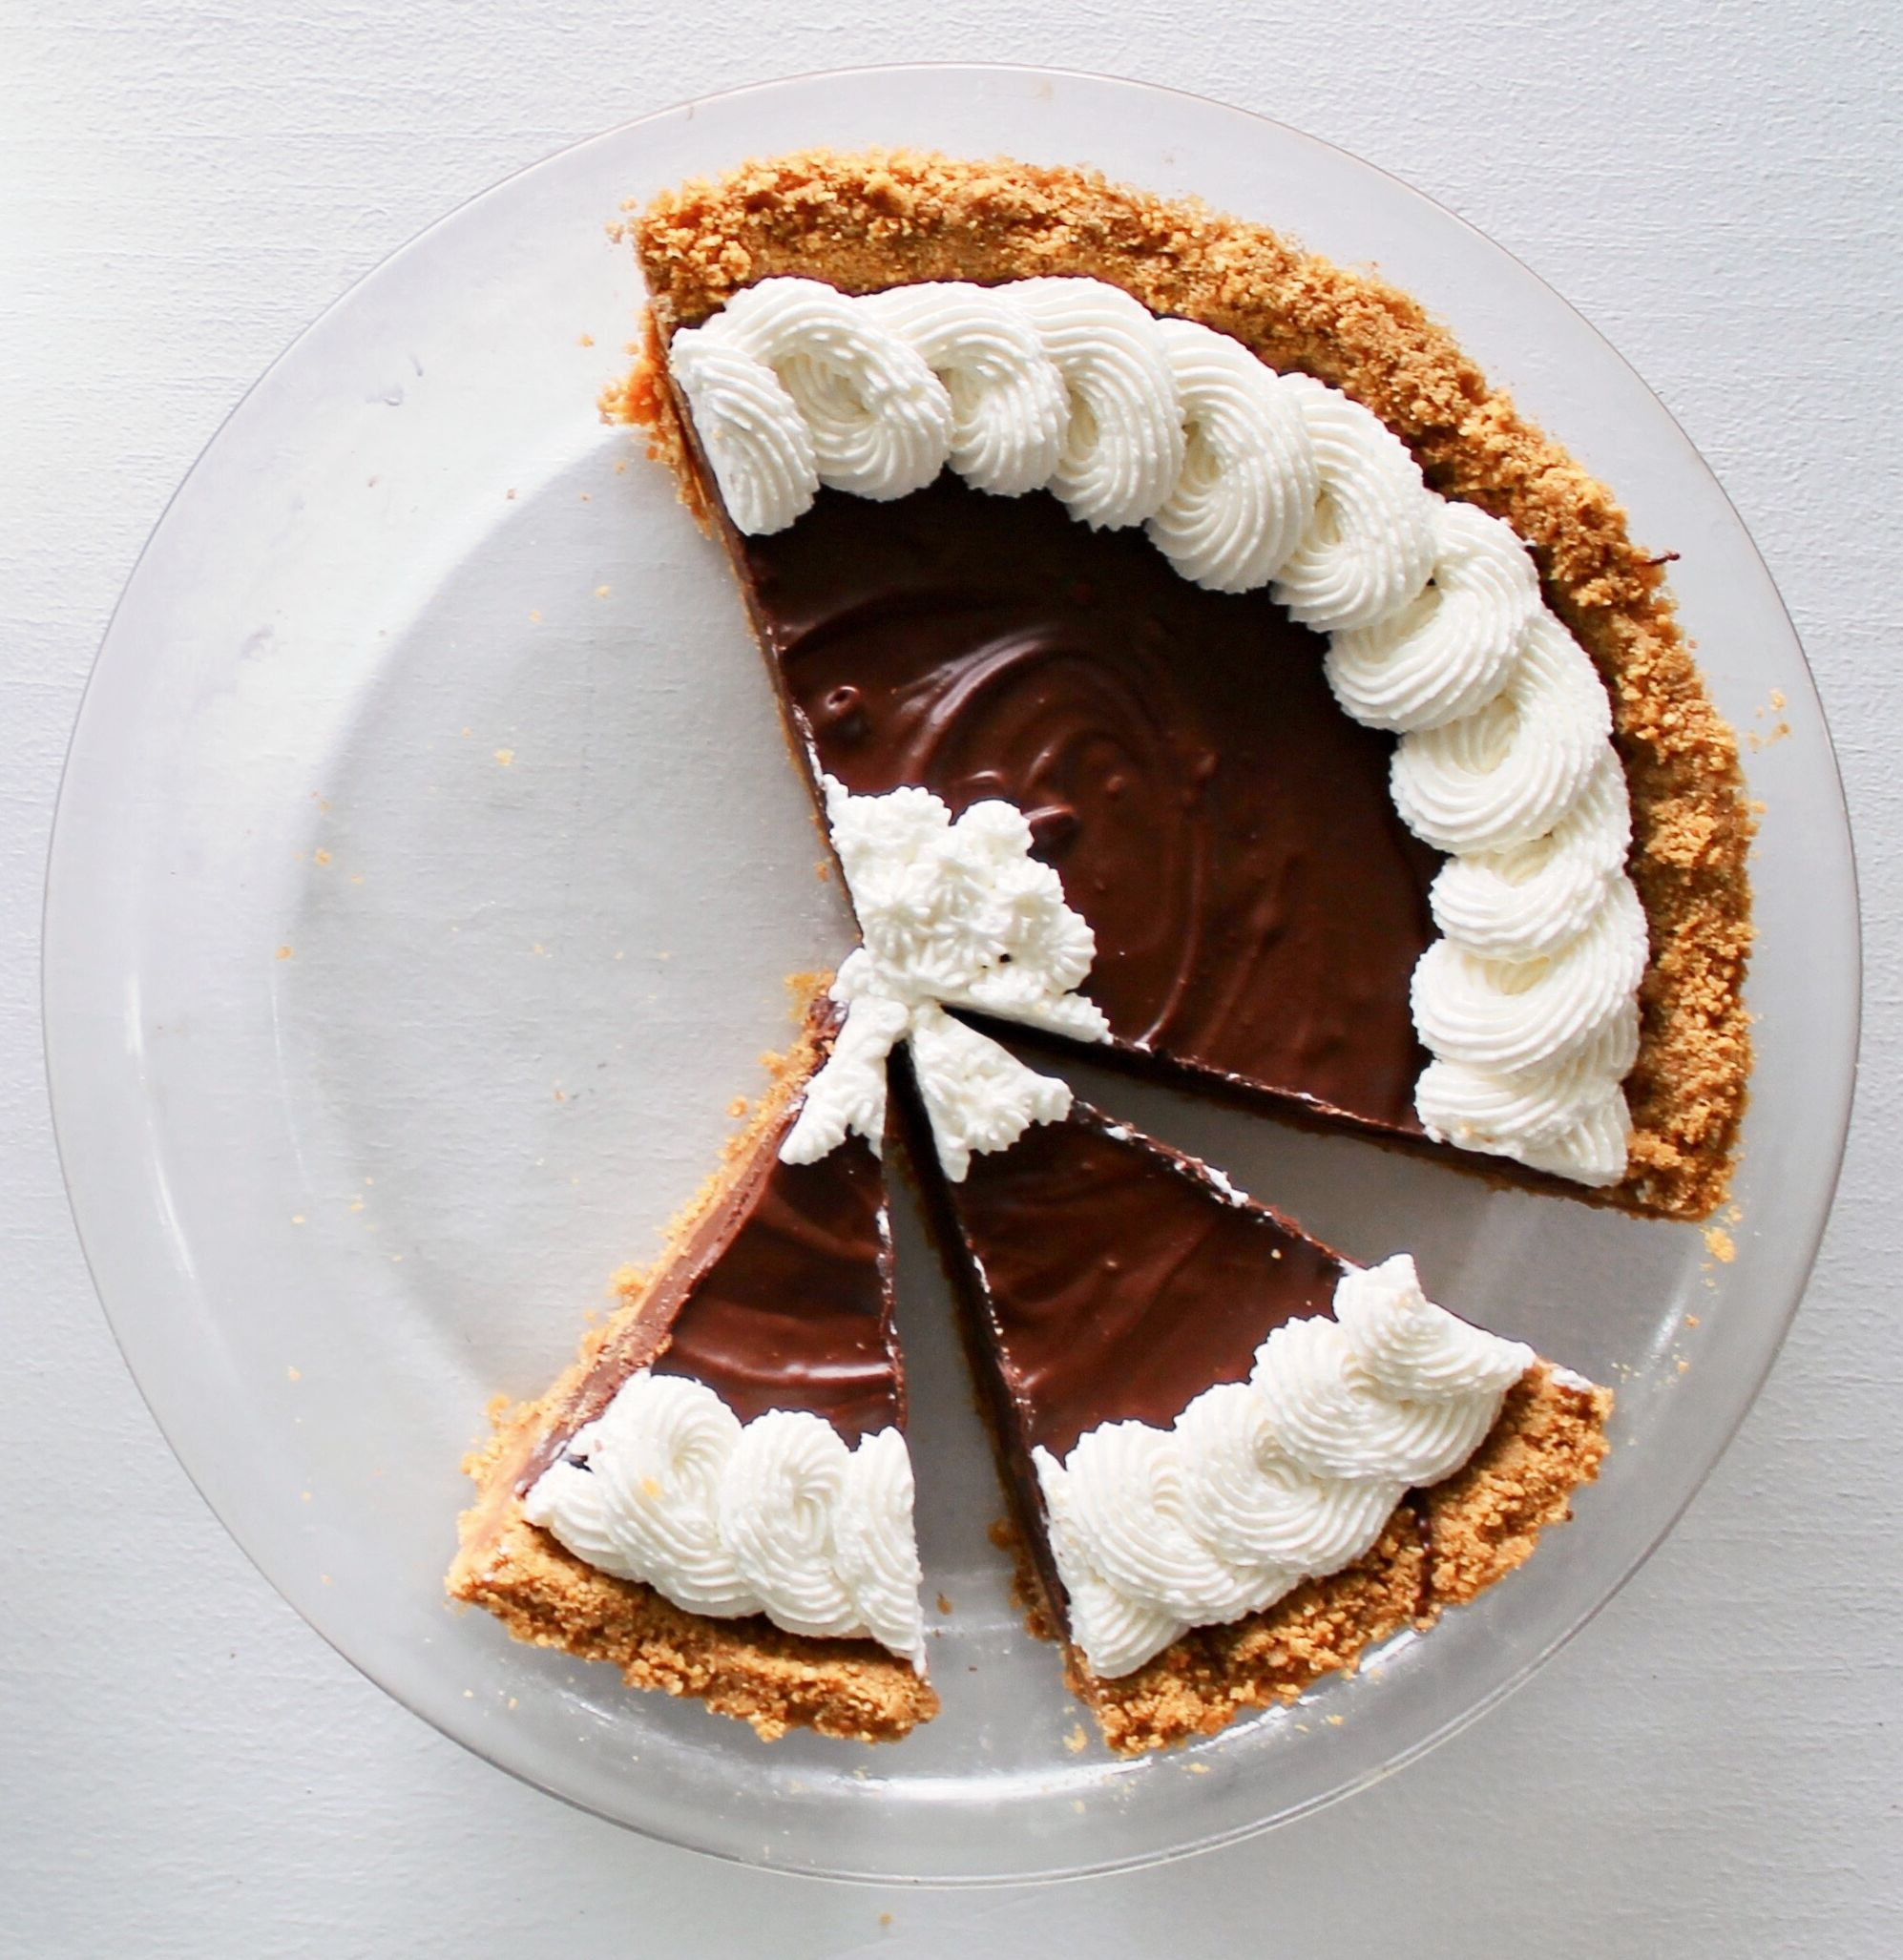 Fluffernutter Chocolate Pie